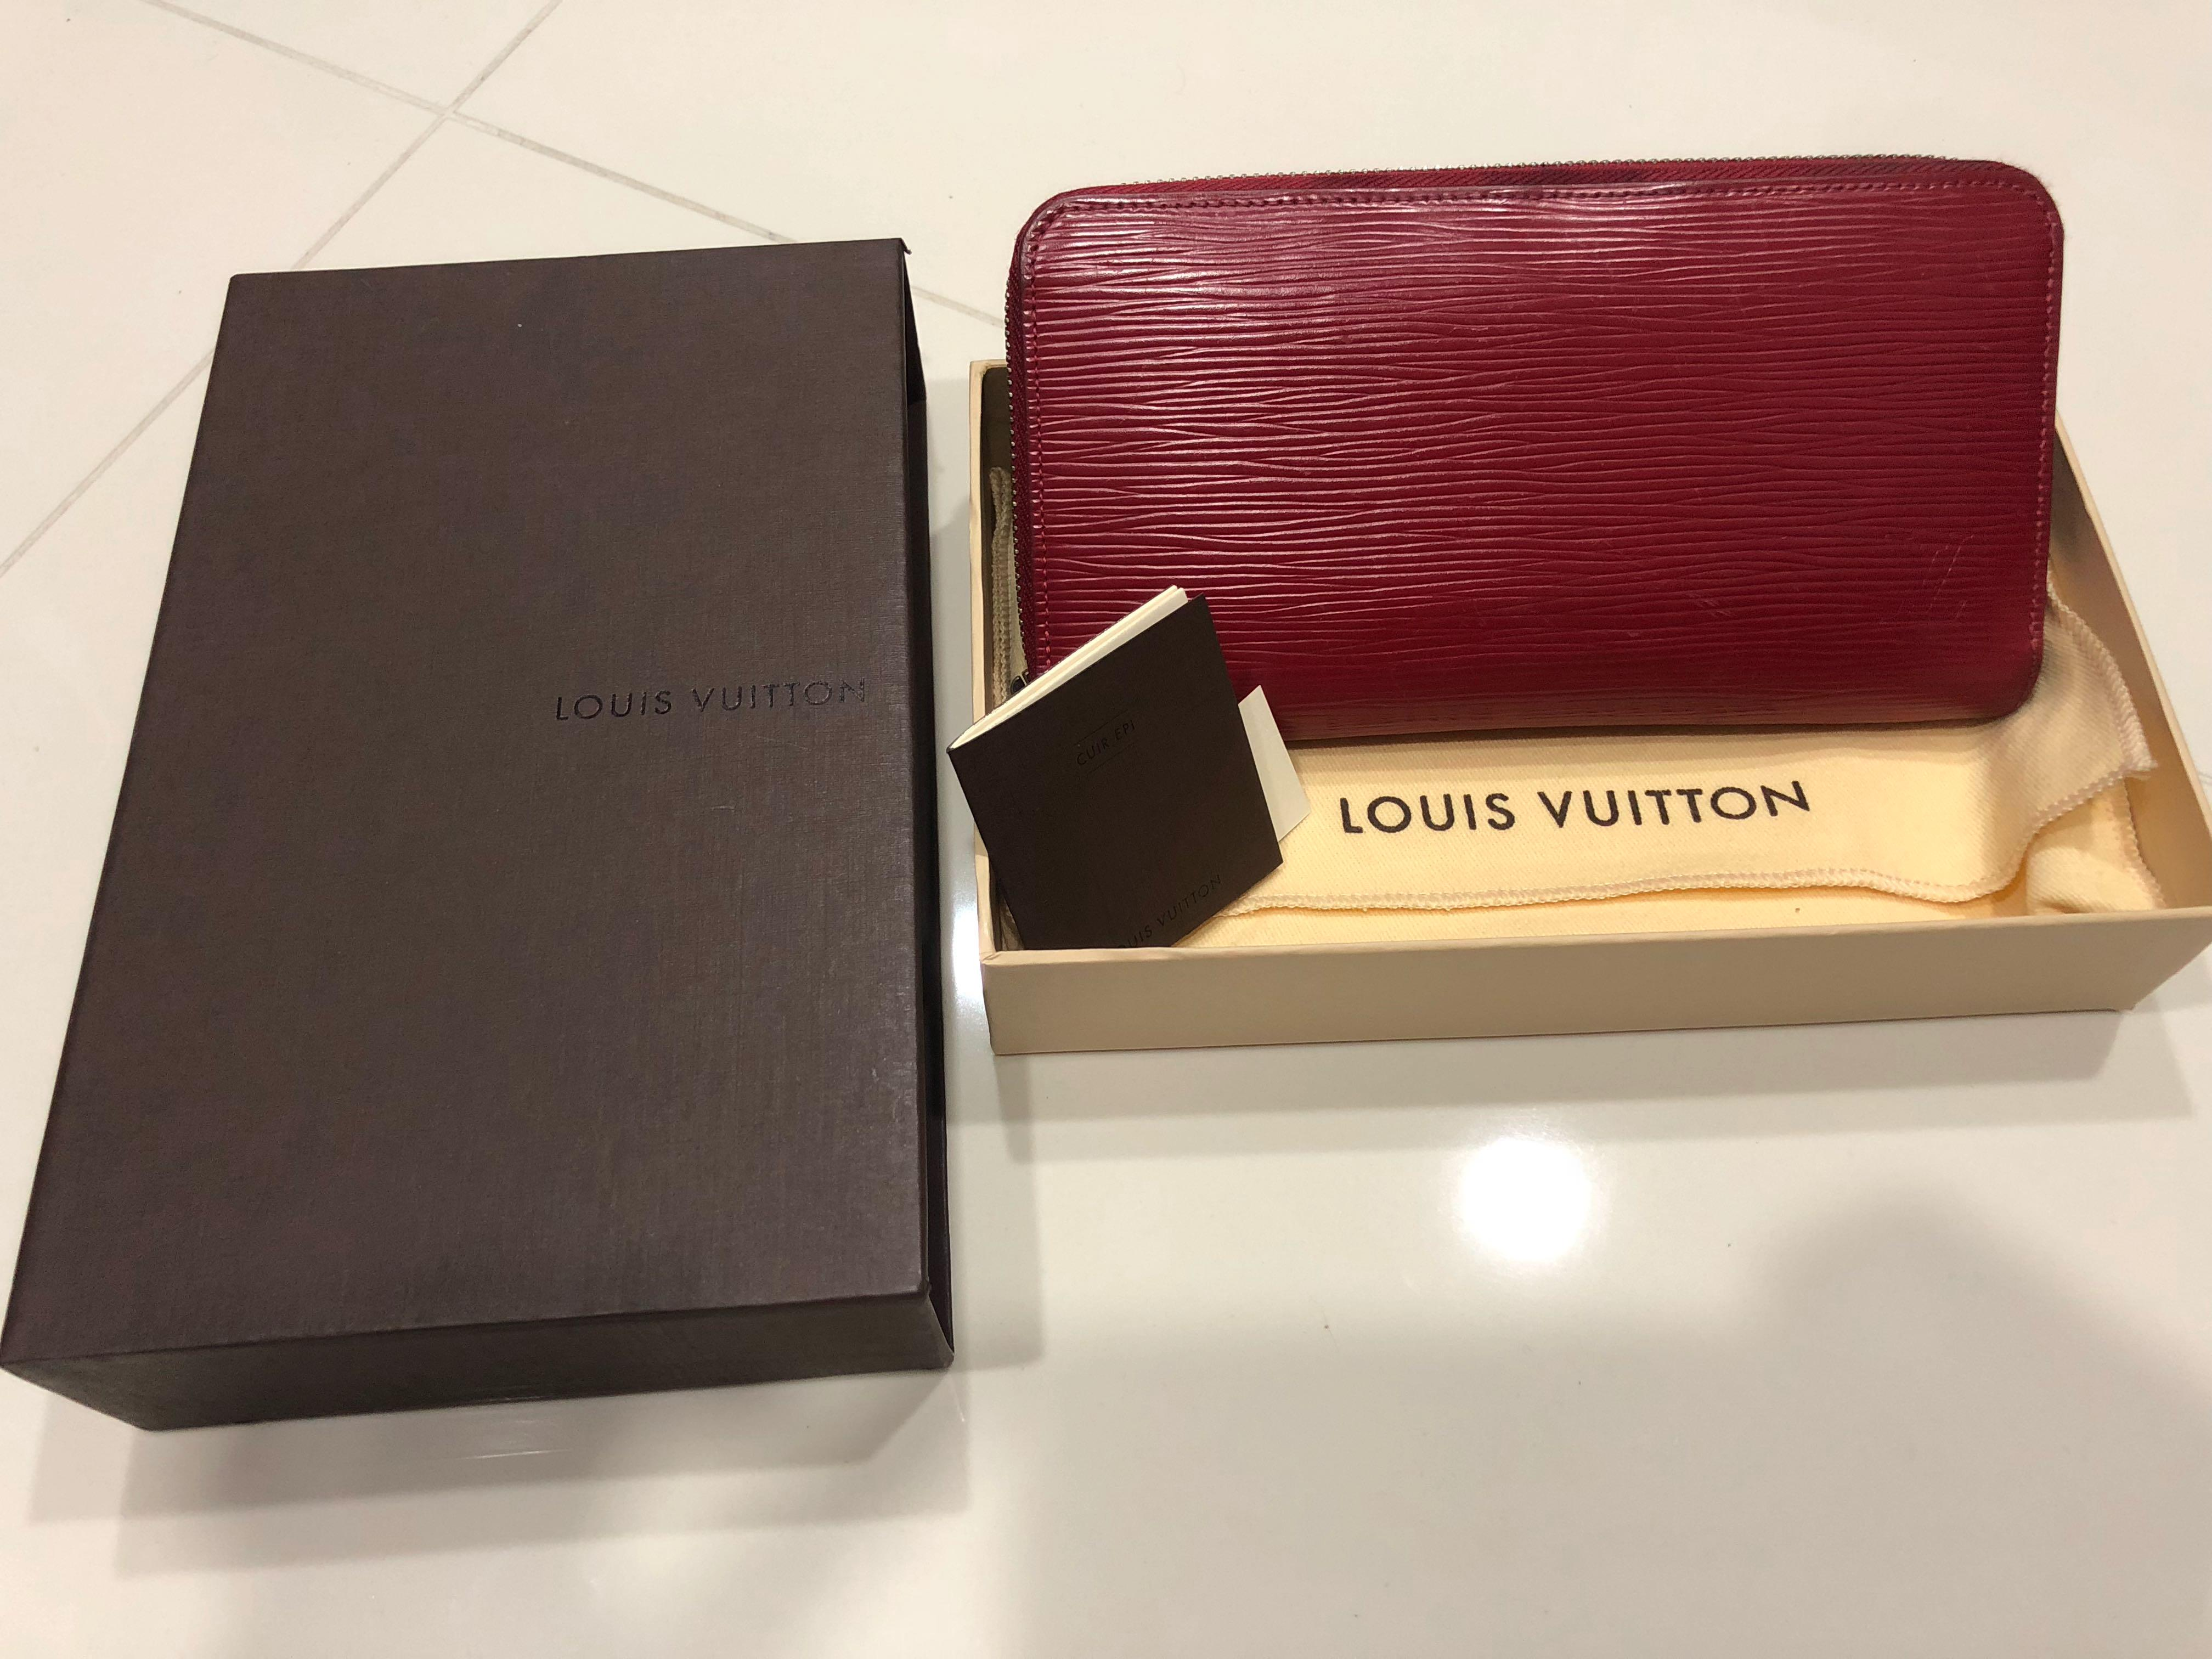 Lv Louis Vuitton Epi Leather Zippy Wallet Women S Fashion Bags Wallets Wallets On Carousell